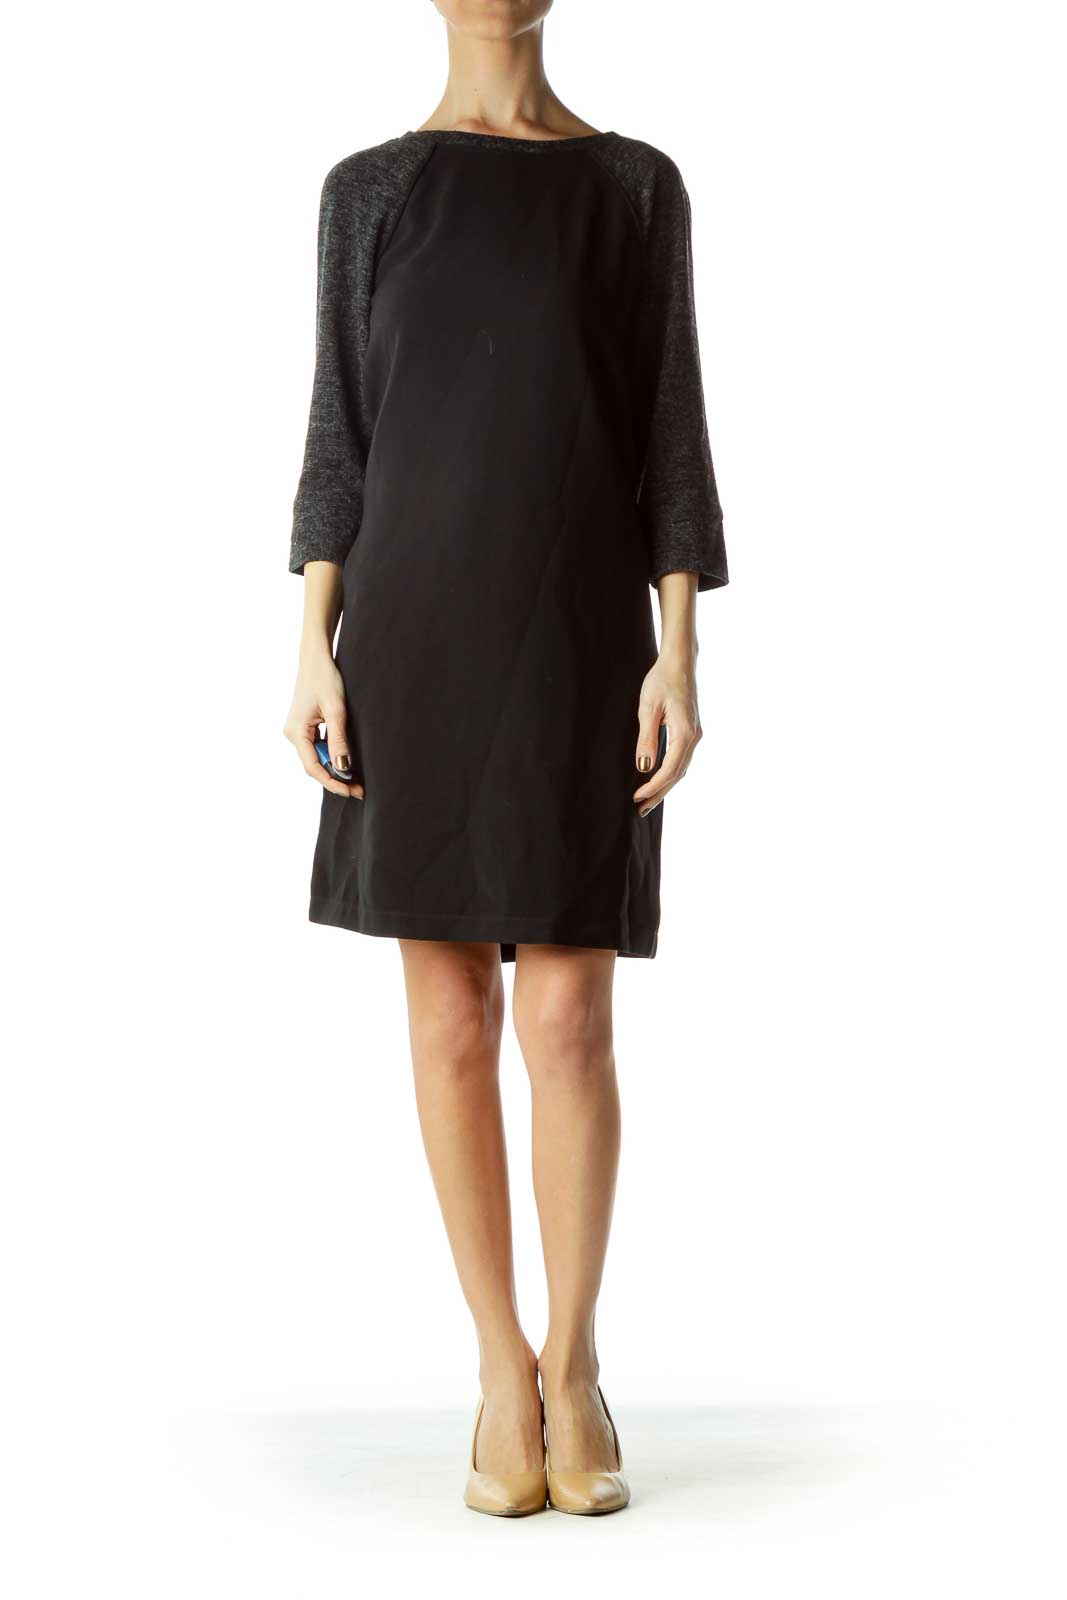 Black Shift Dress with Knit Sleeves